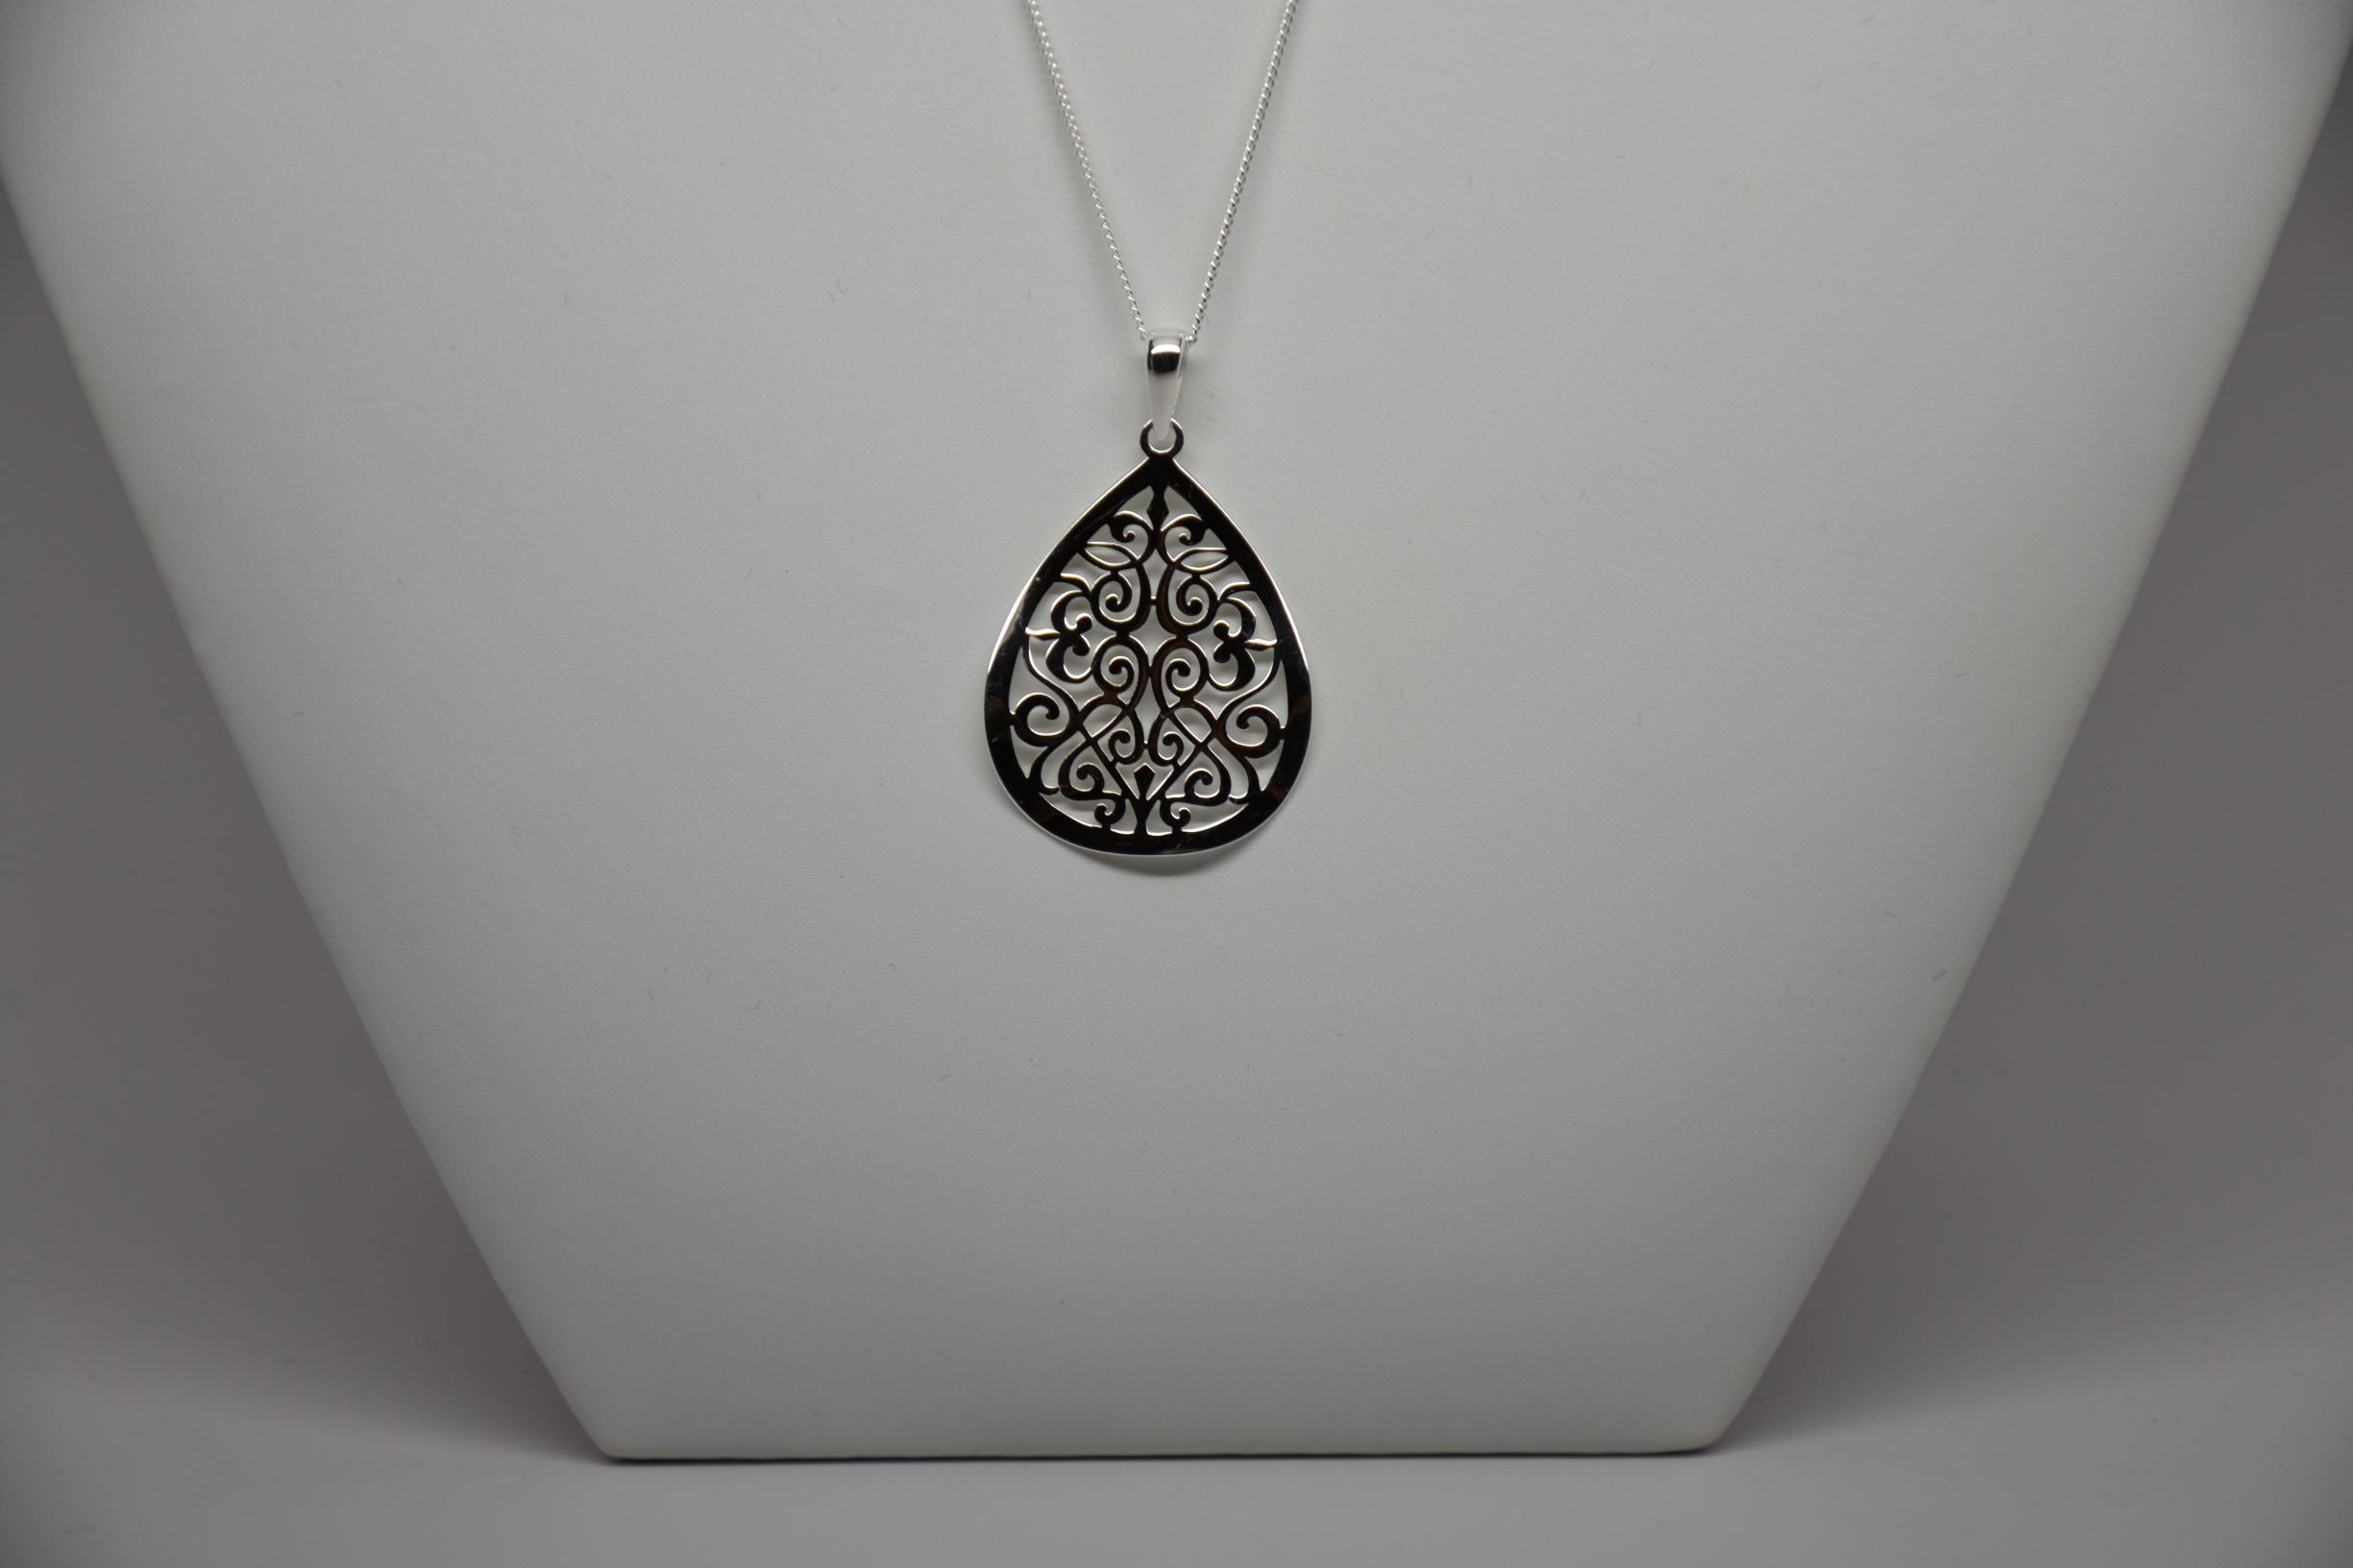 Irish Assayed Sterling Silver Pendant & Sterling Silver Chain P801/29/11/18